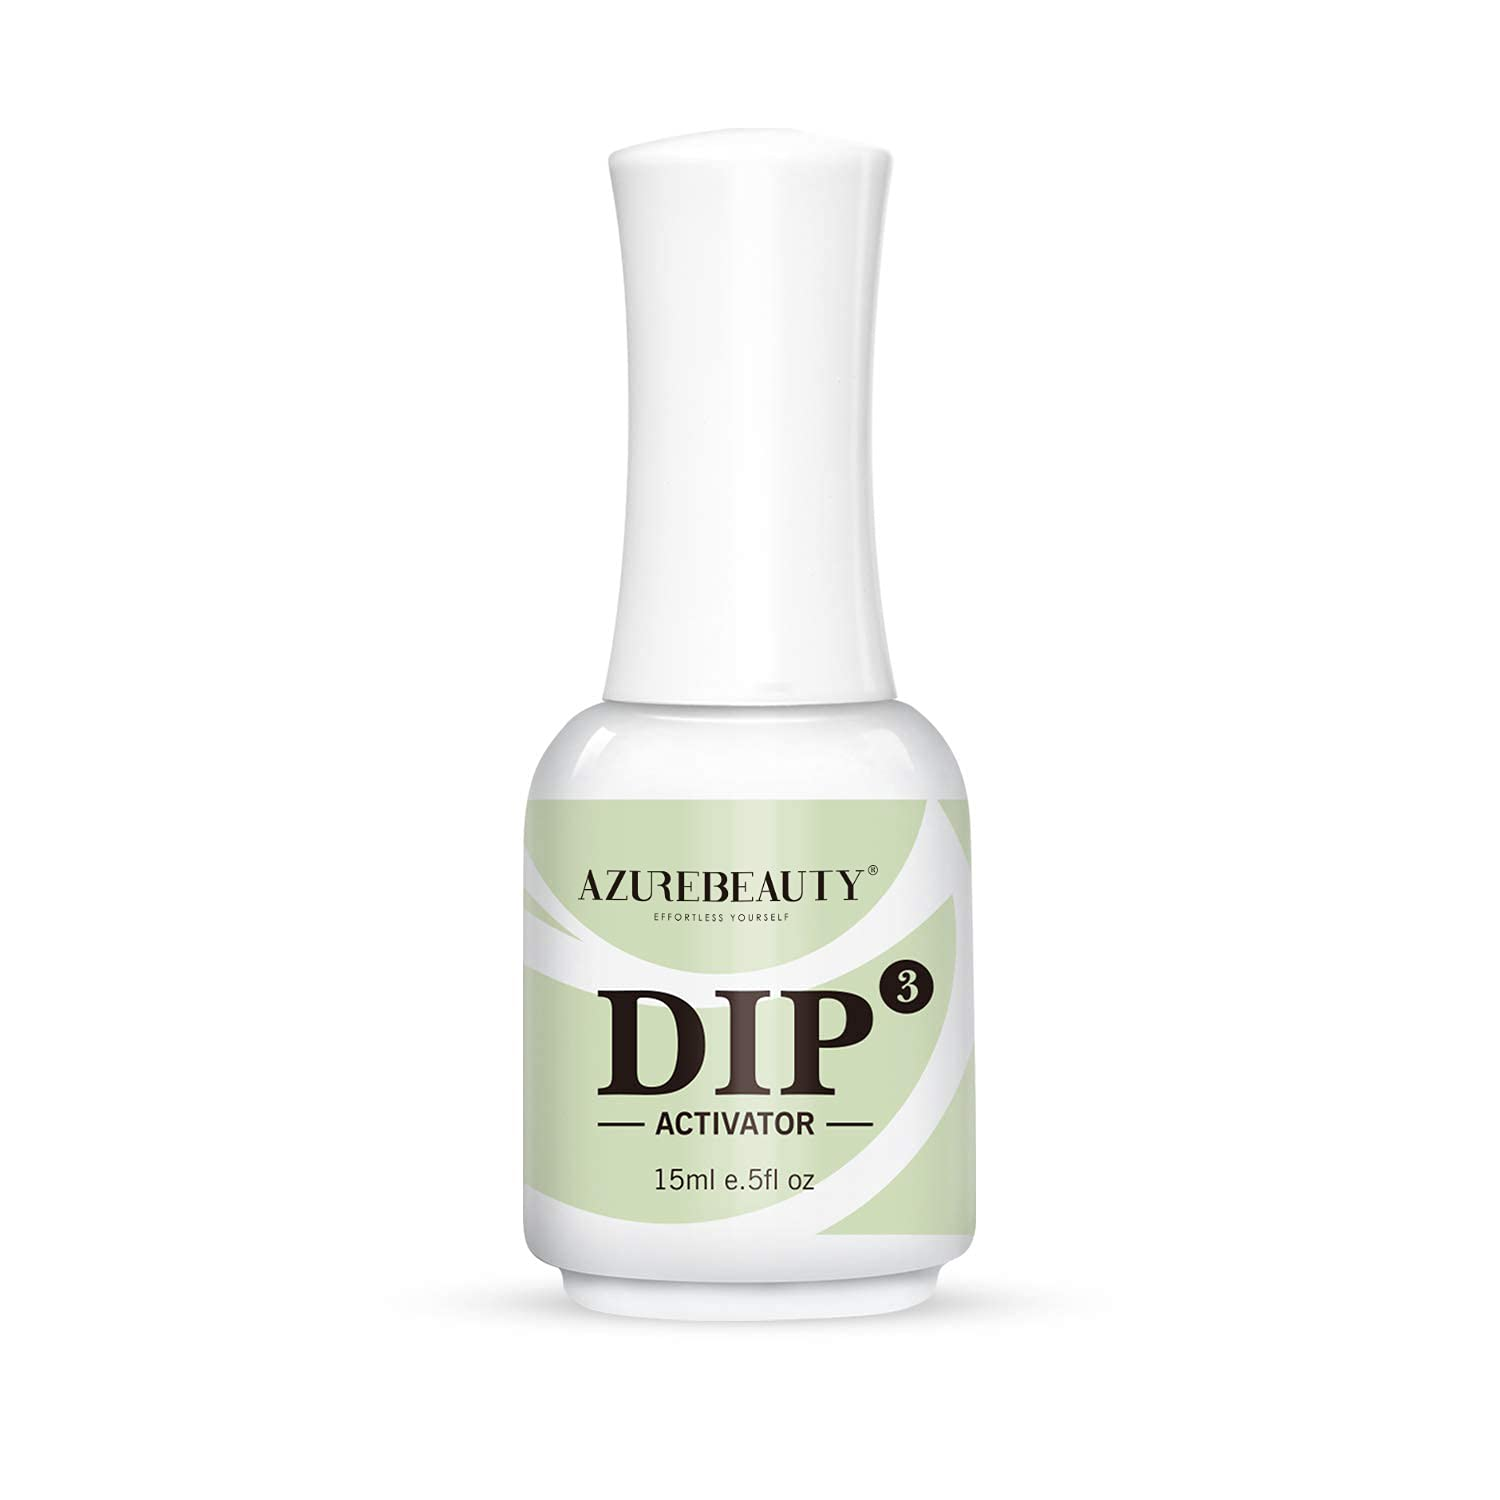 AZUREBEAUTY Dip Powder At the price of surprise 15ml free Activator